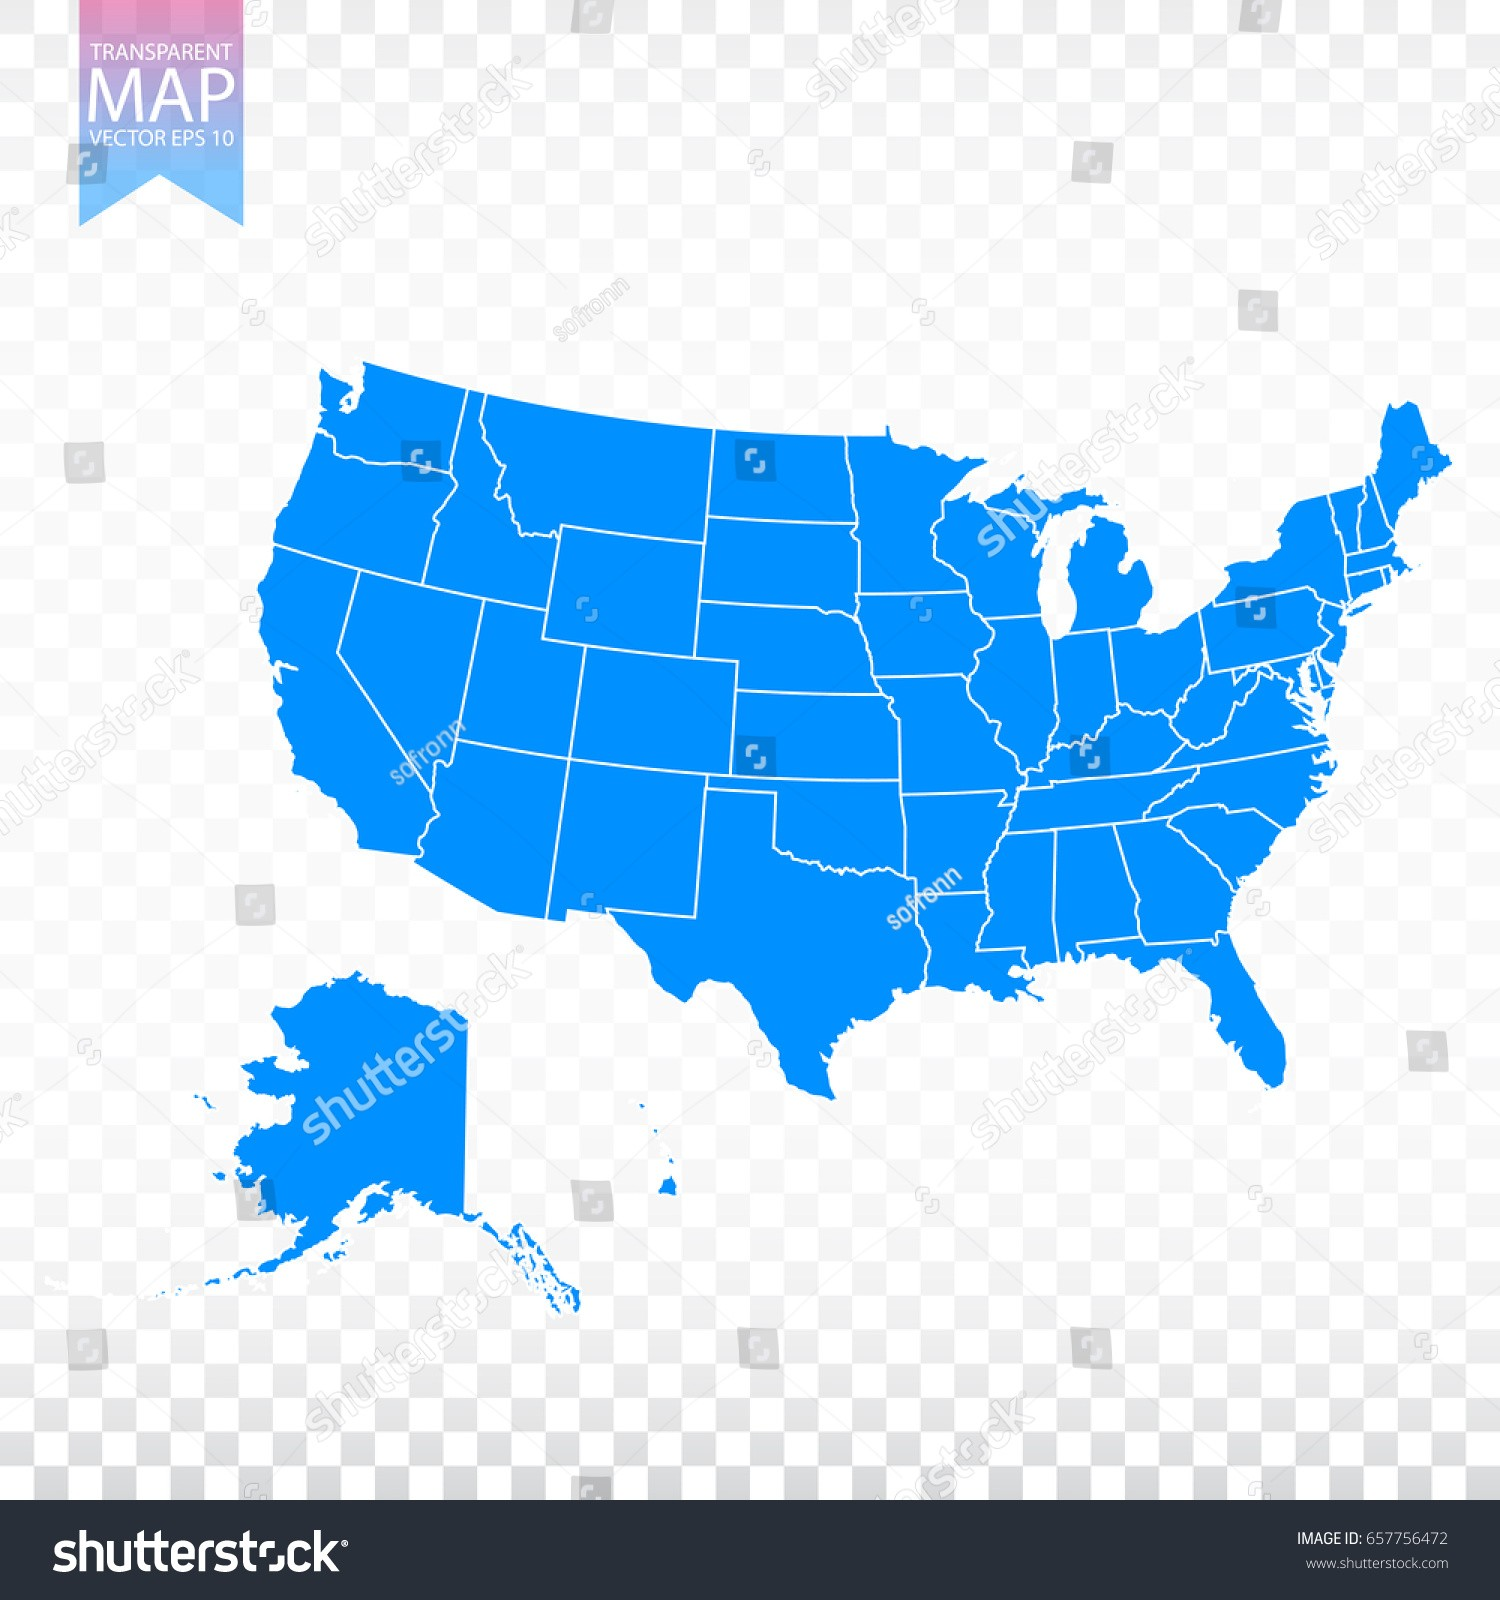 1500x1600 Maps. Us Map Transparent Background Stock Vector Transparent High